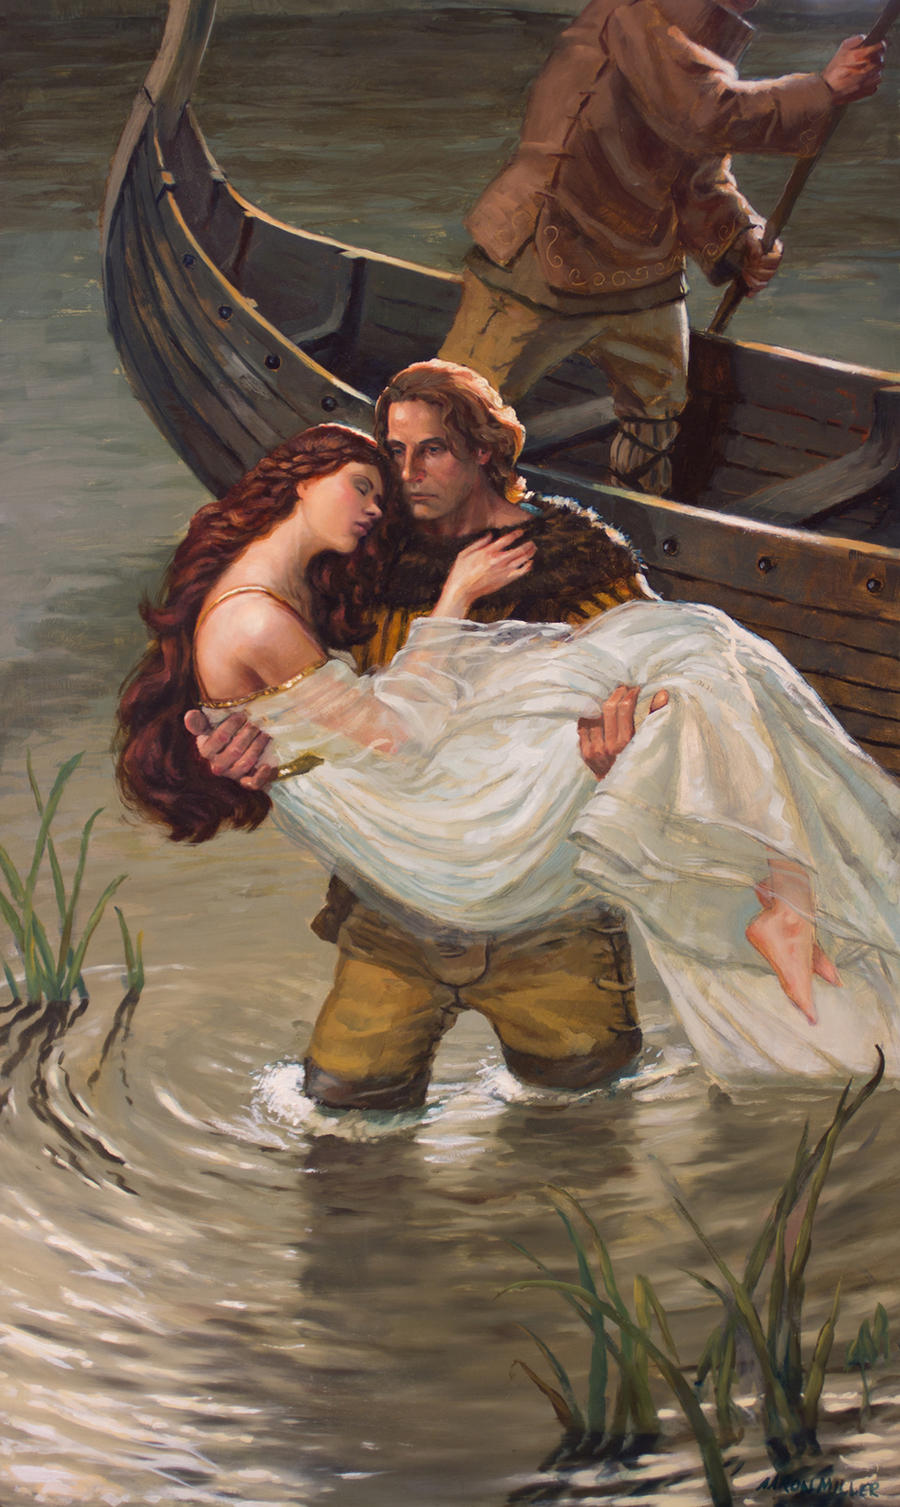 Tristan and Isolde by AaronMiller